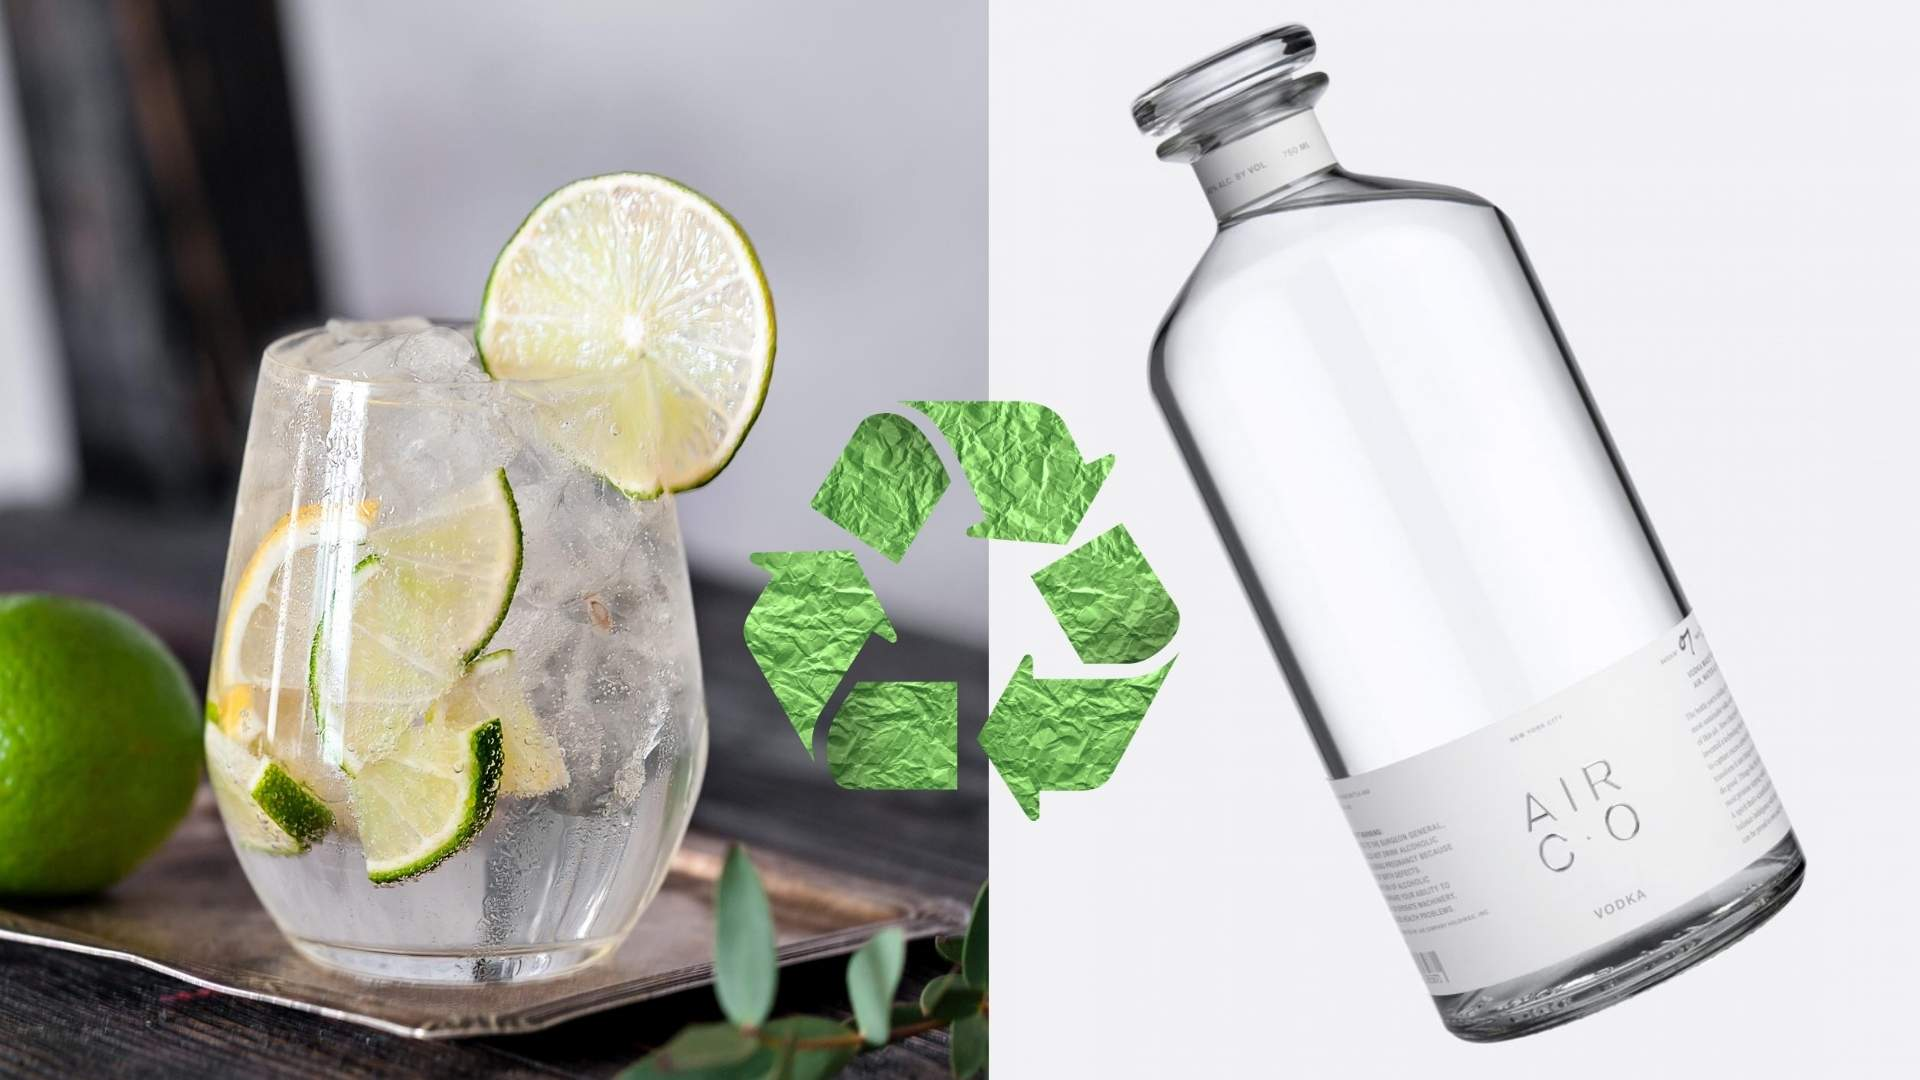 air co sustainable green vodka